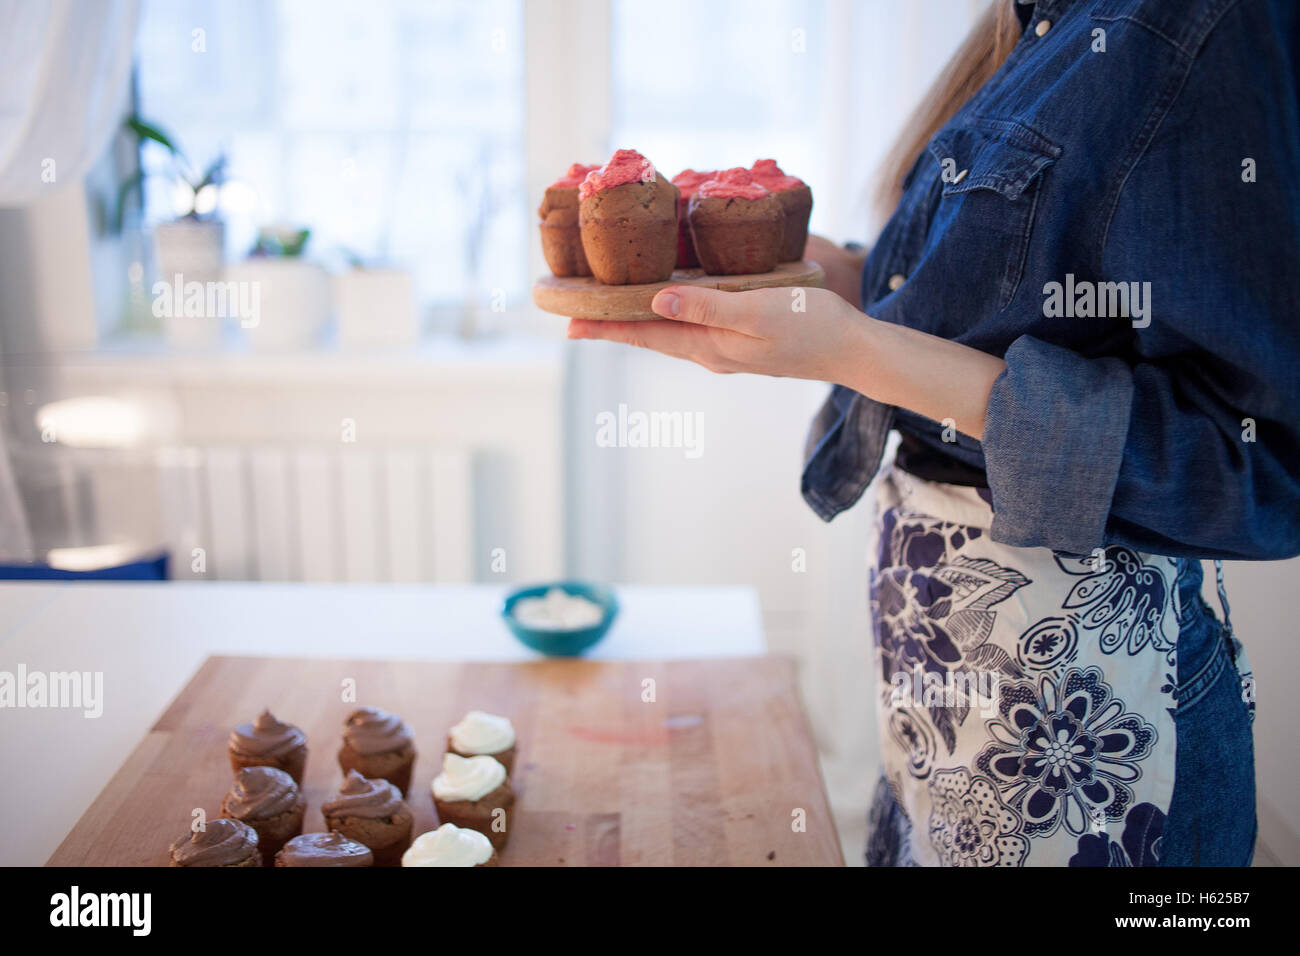 girl holding plate of fresh hot muffins, blurred background - Stock Image